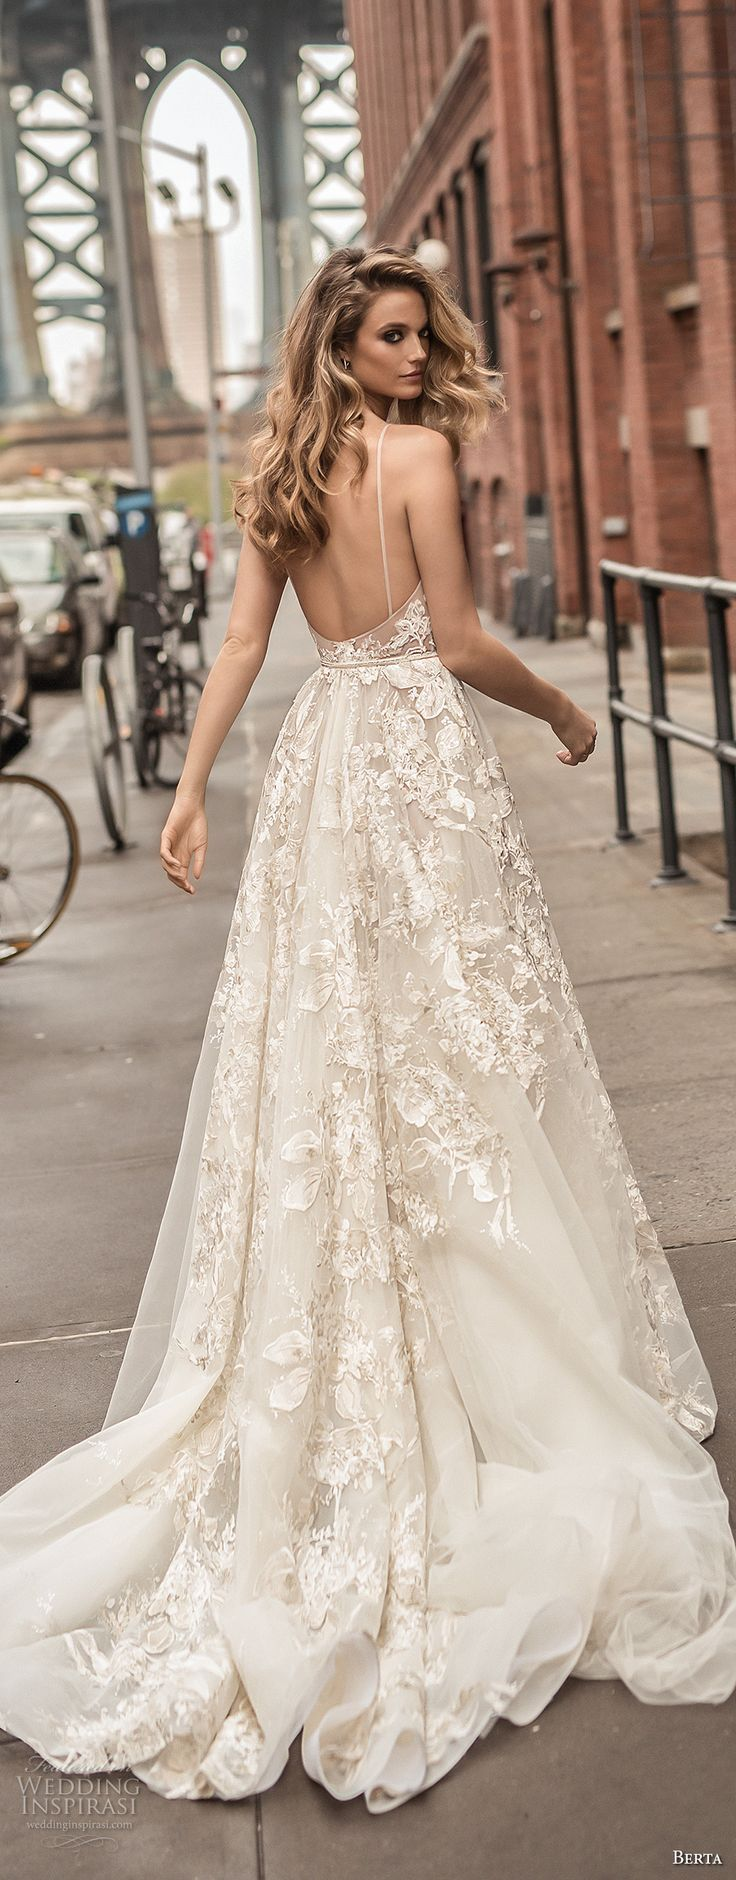 berta spring 2018 bridal spaghetti strap deep plunging v neck full embellishment sexy romantic a line wedding dress open back chapel train (1) bv